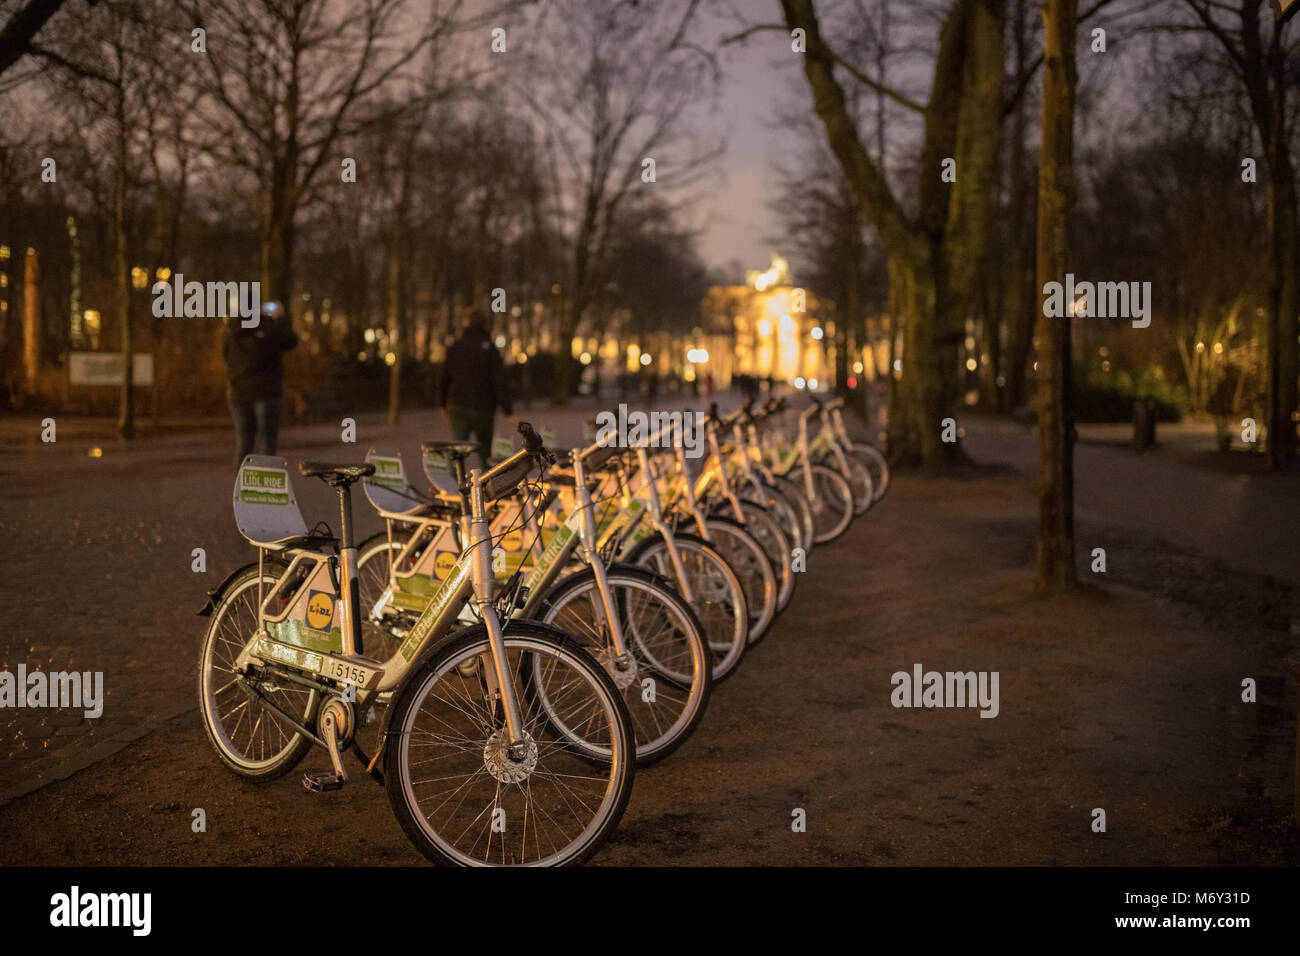 Bicycles in the Tiergarten at night, Berlin, Germany - Stock Image